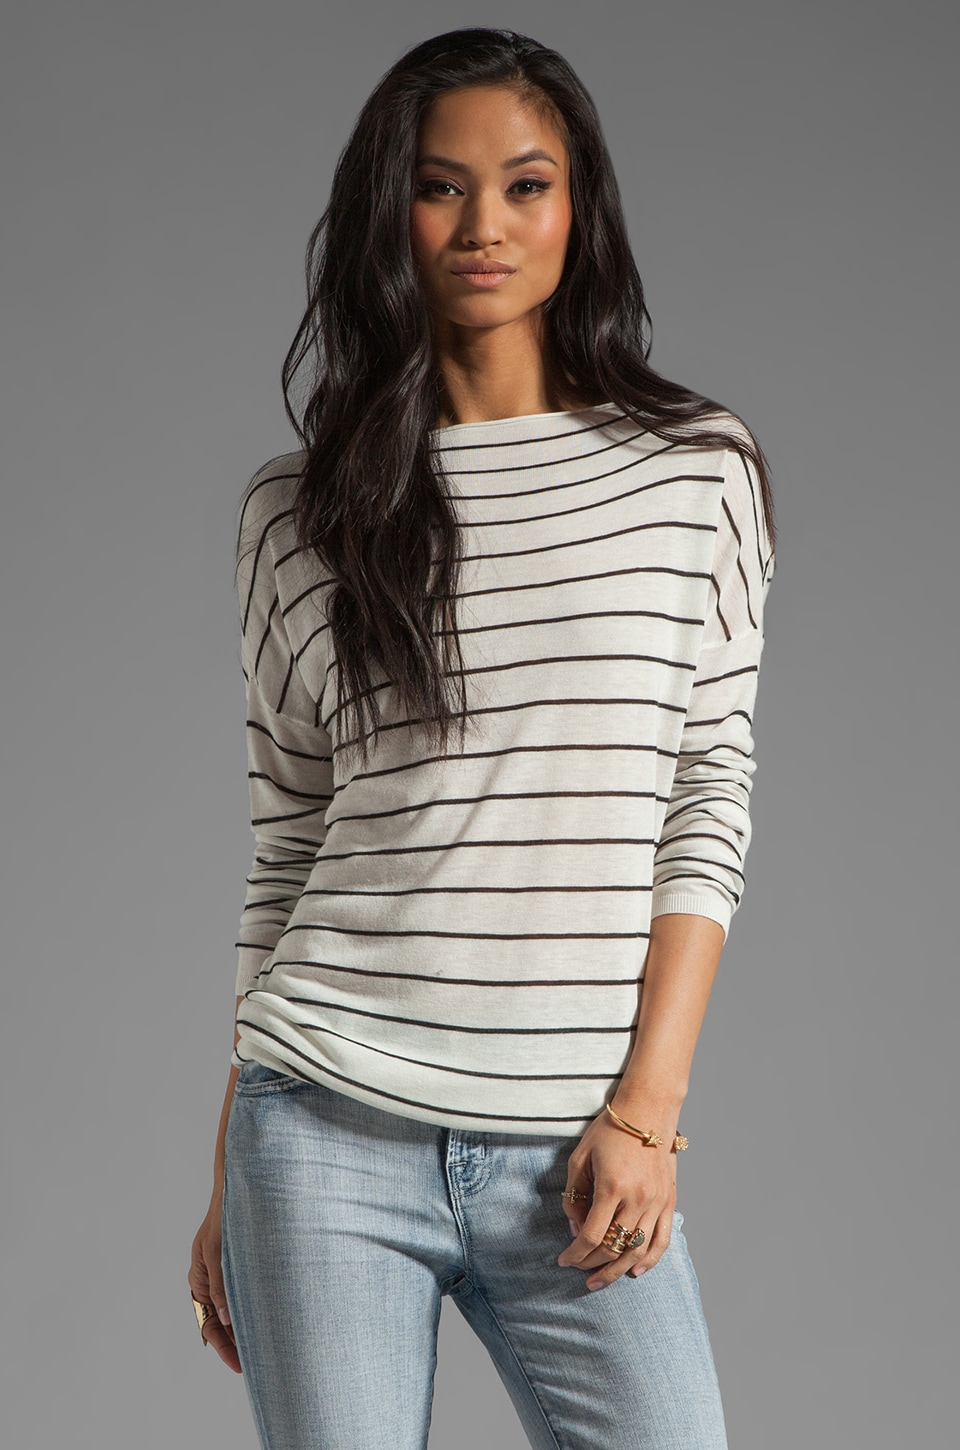 Vince Striped Boatneck Sweater in Milk/Black